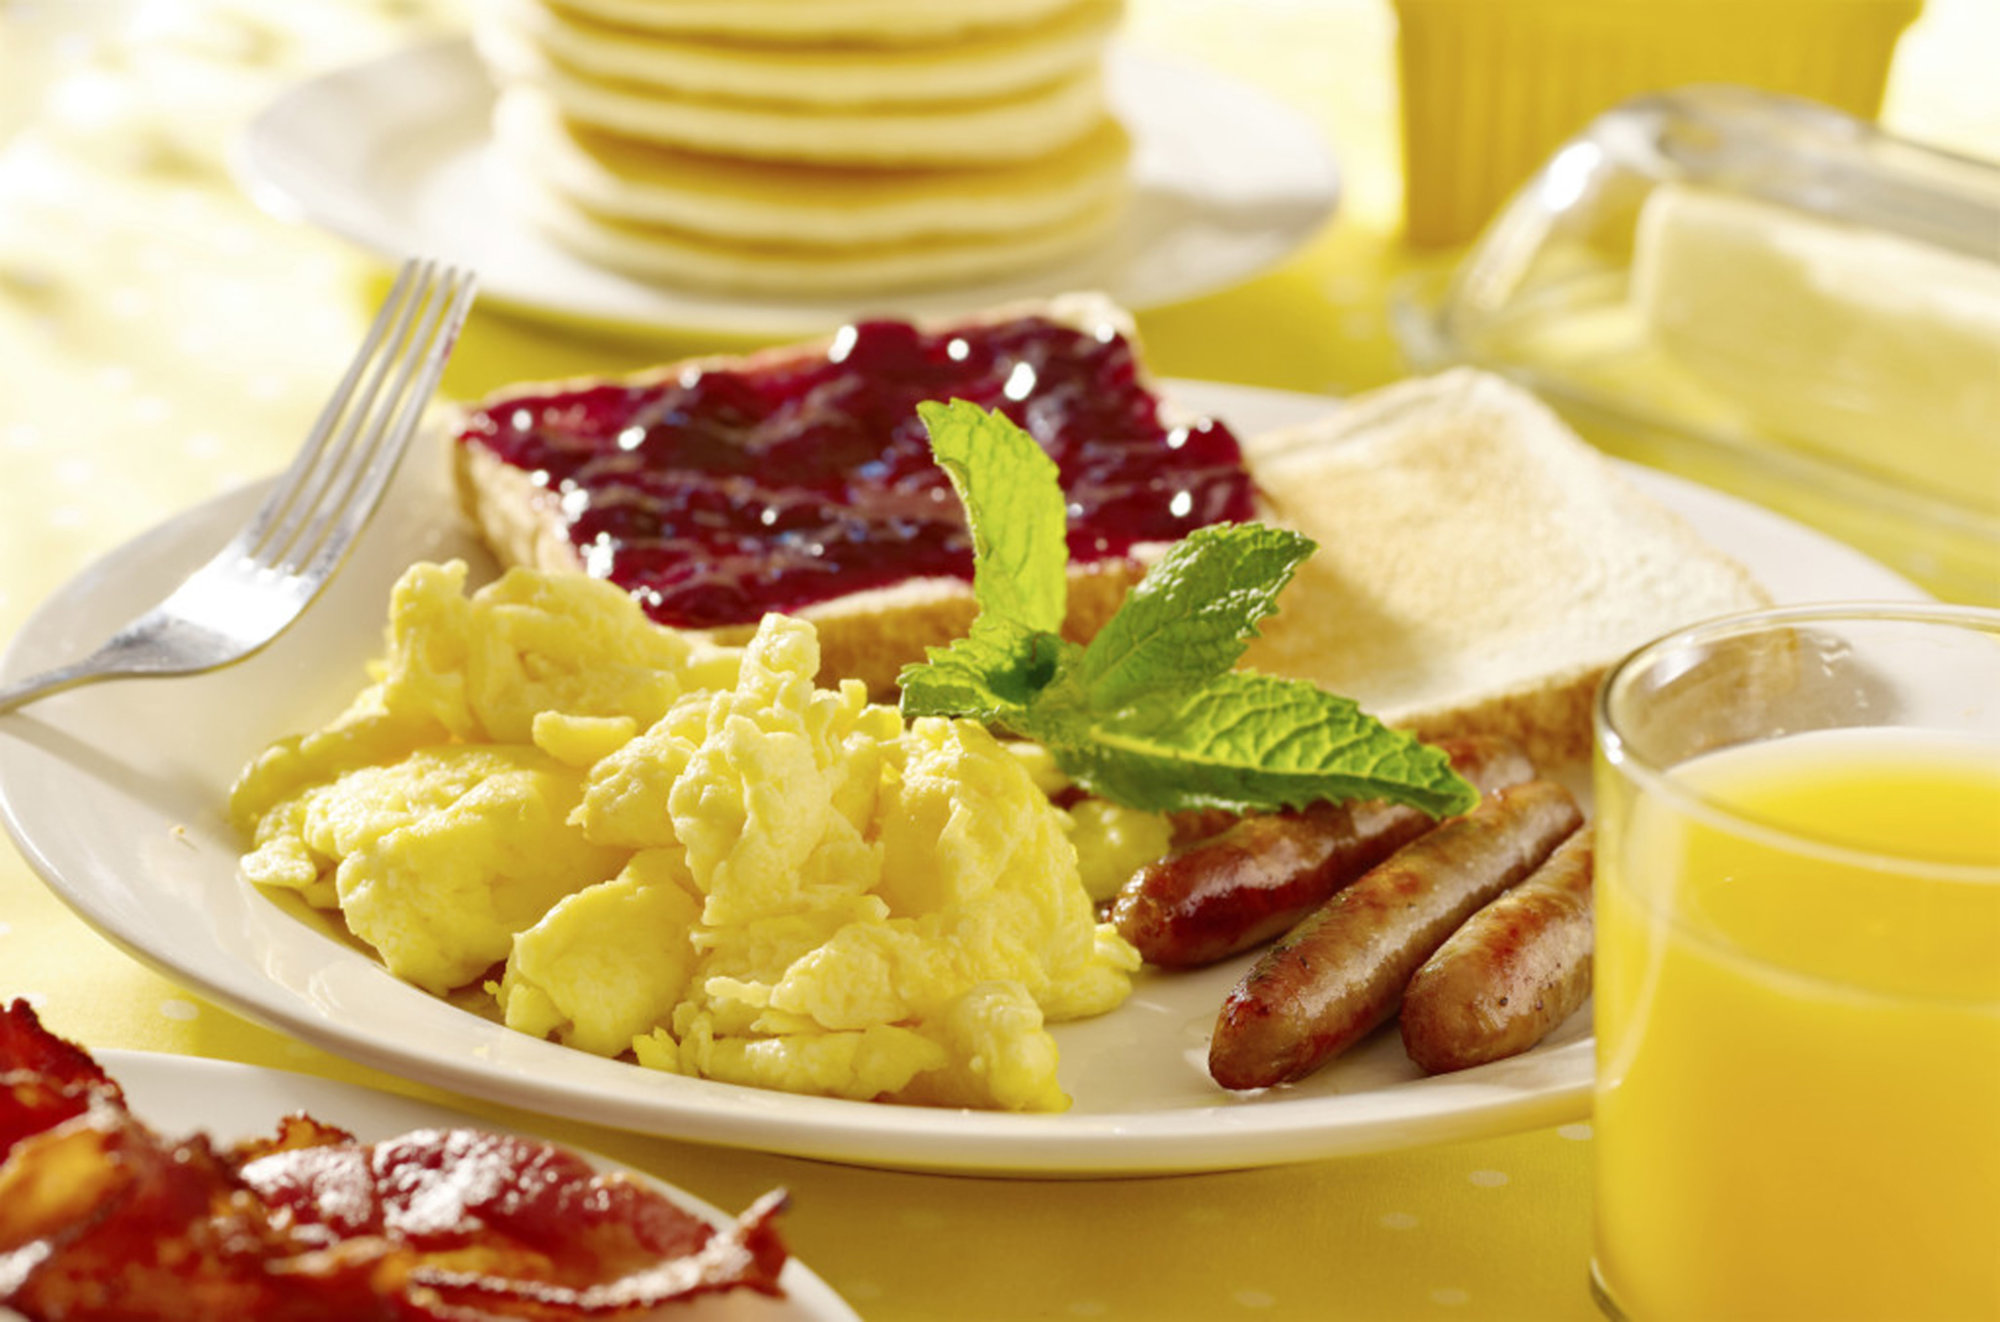 Is power breakfast the new power lunch?